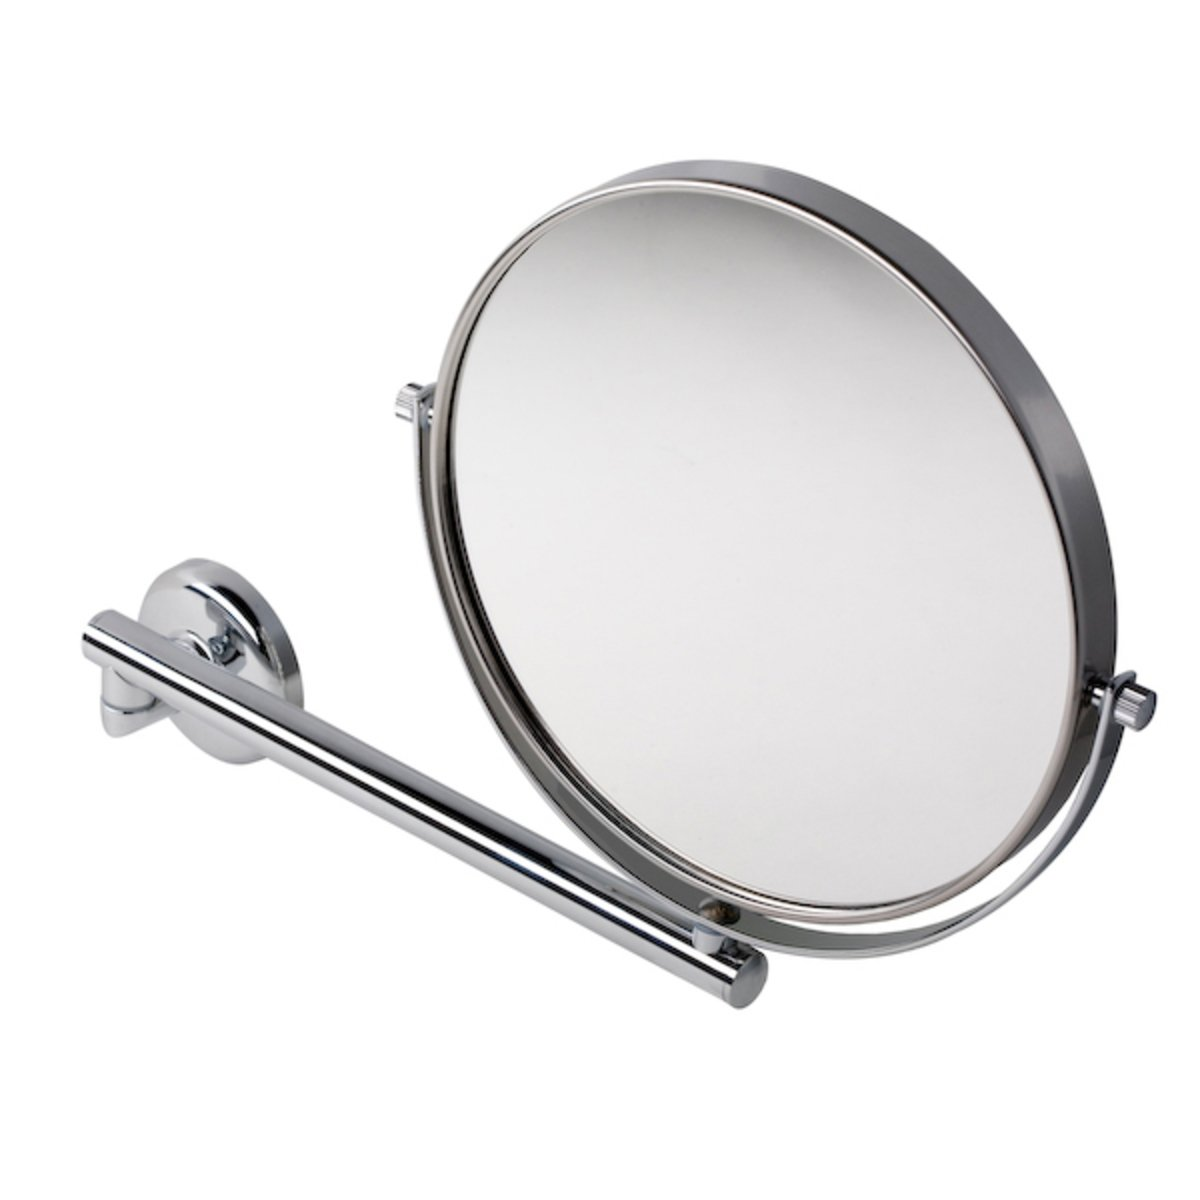 Geesa standard hotel collection miroir de rasage 19cm for Miroir tournant